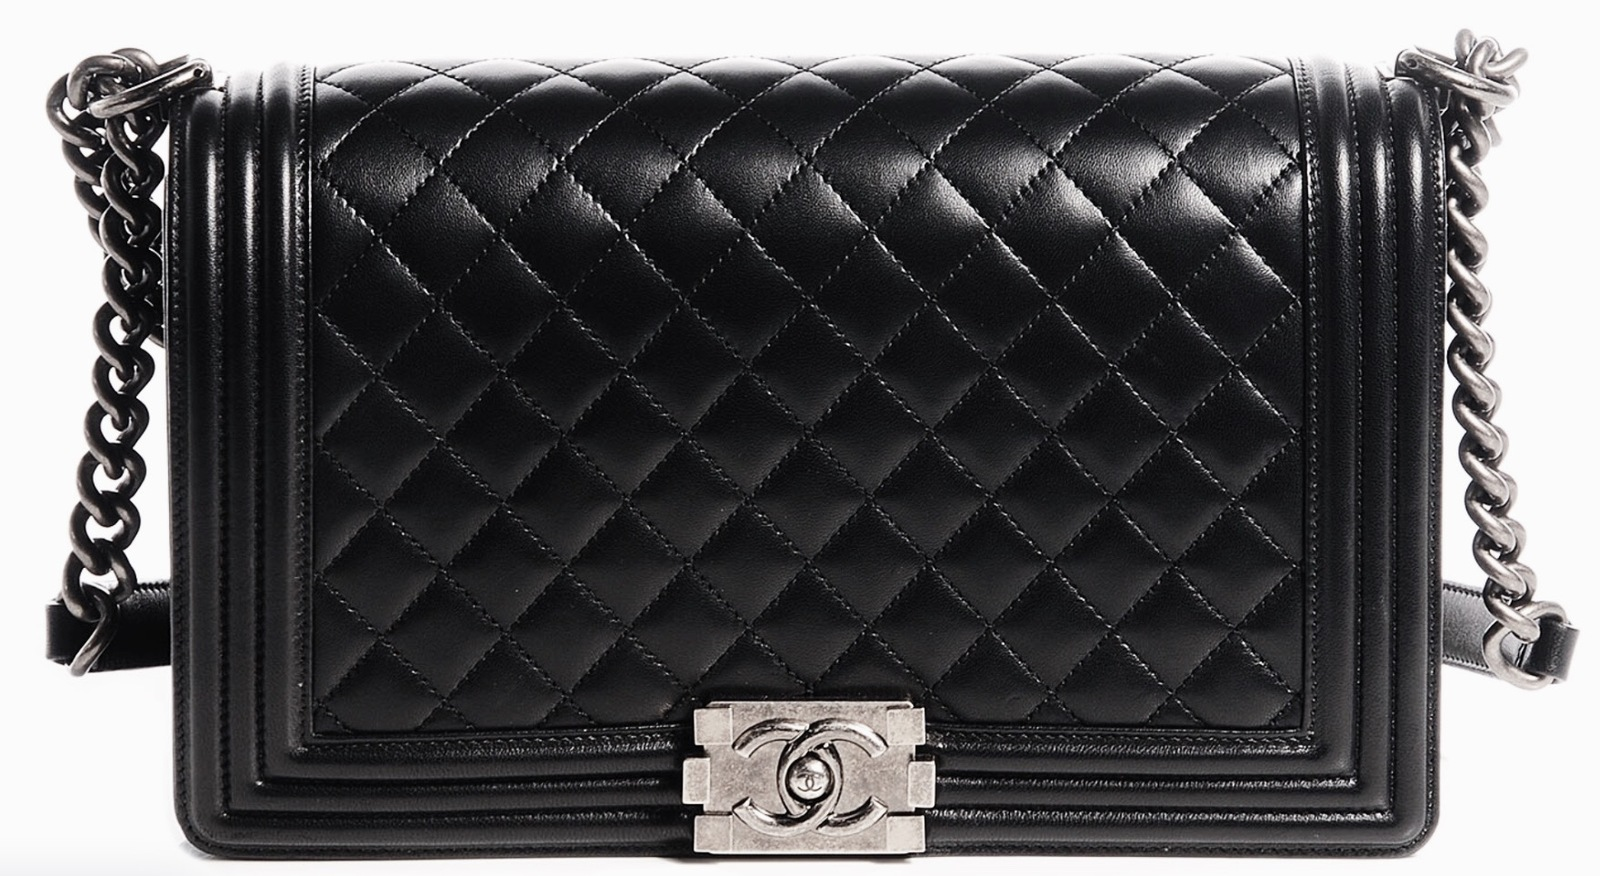 b35f43cb2272 100% AUTHENTIC CHANEL BLACK QUILTED LAMBSKIN NEW MEDIUM BOY FLAP BAG ...